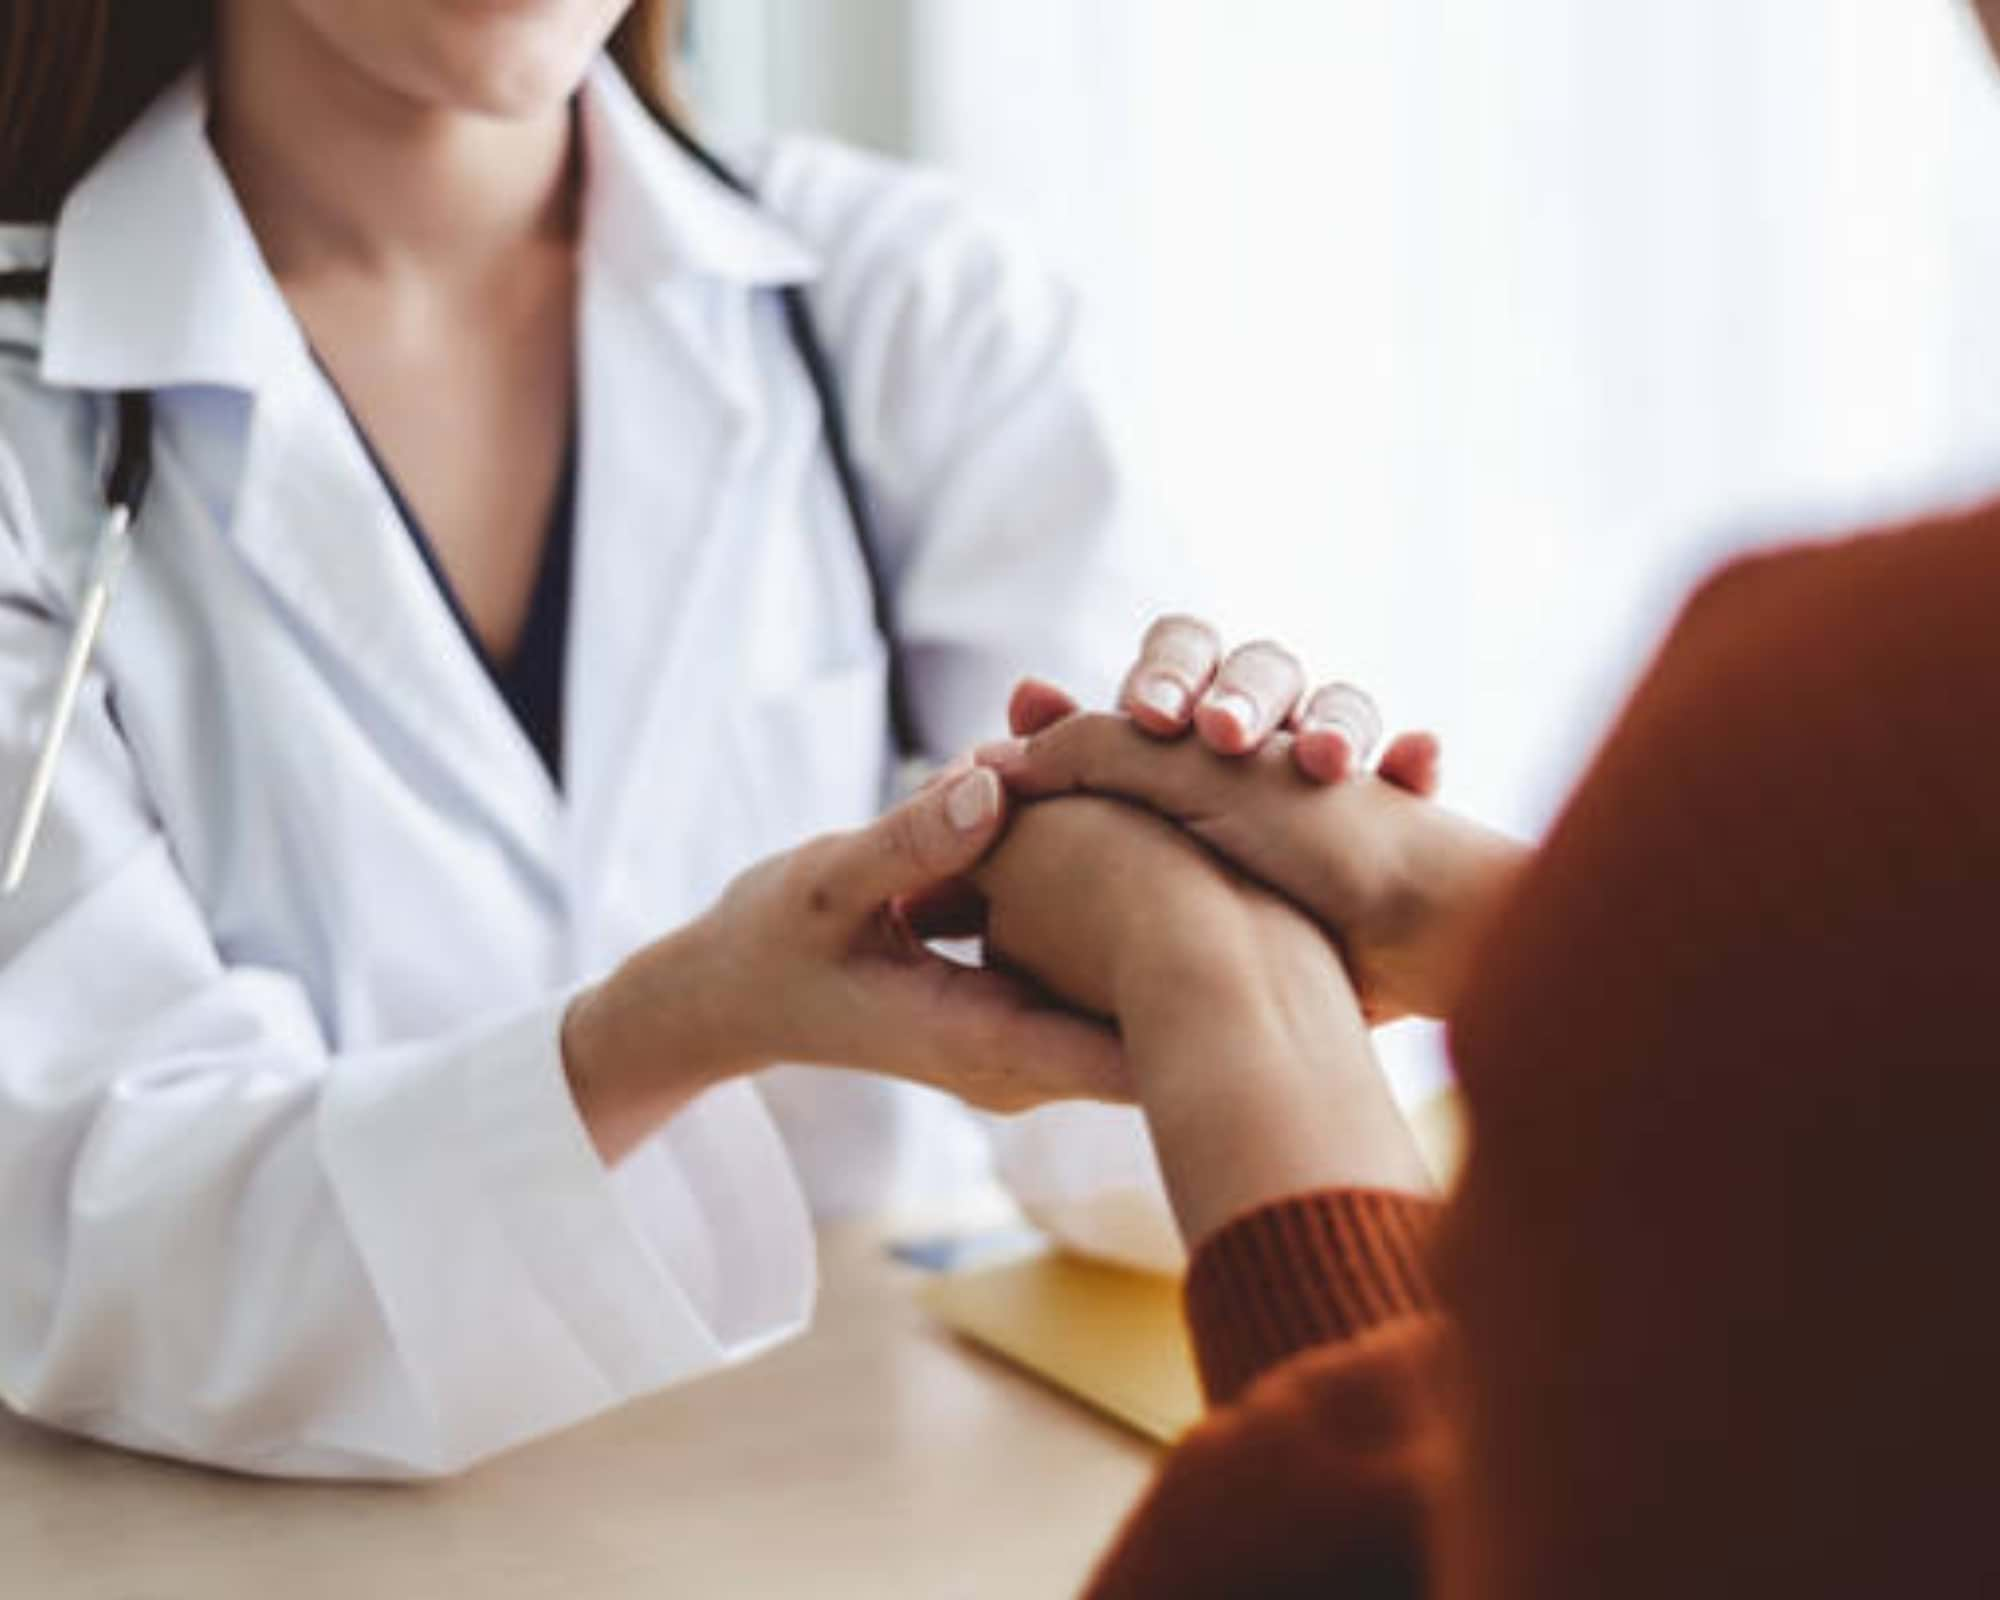 Breast Cancer: Tips for Choosing Your Doctor and Hospital